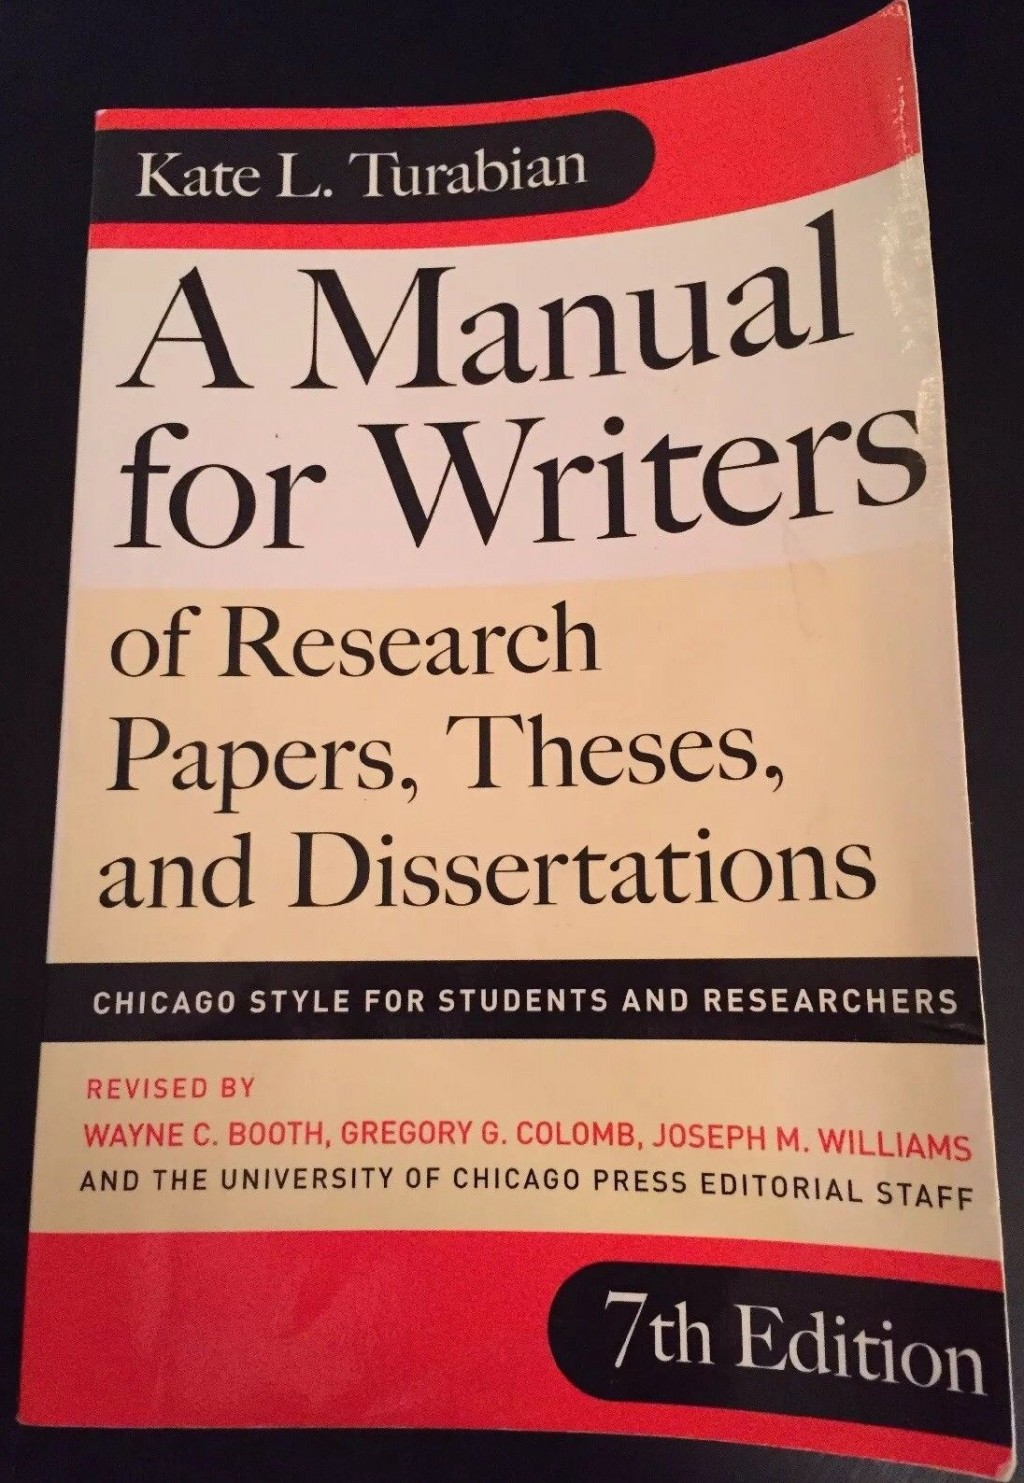 004 Manual For Writers Of Research Papers Theses And Dissertations 7th Edition Paper S Sensational A Large